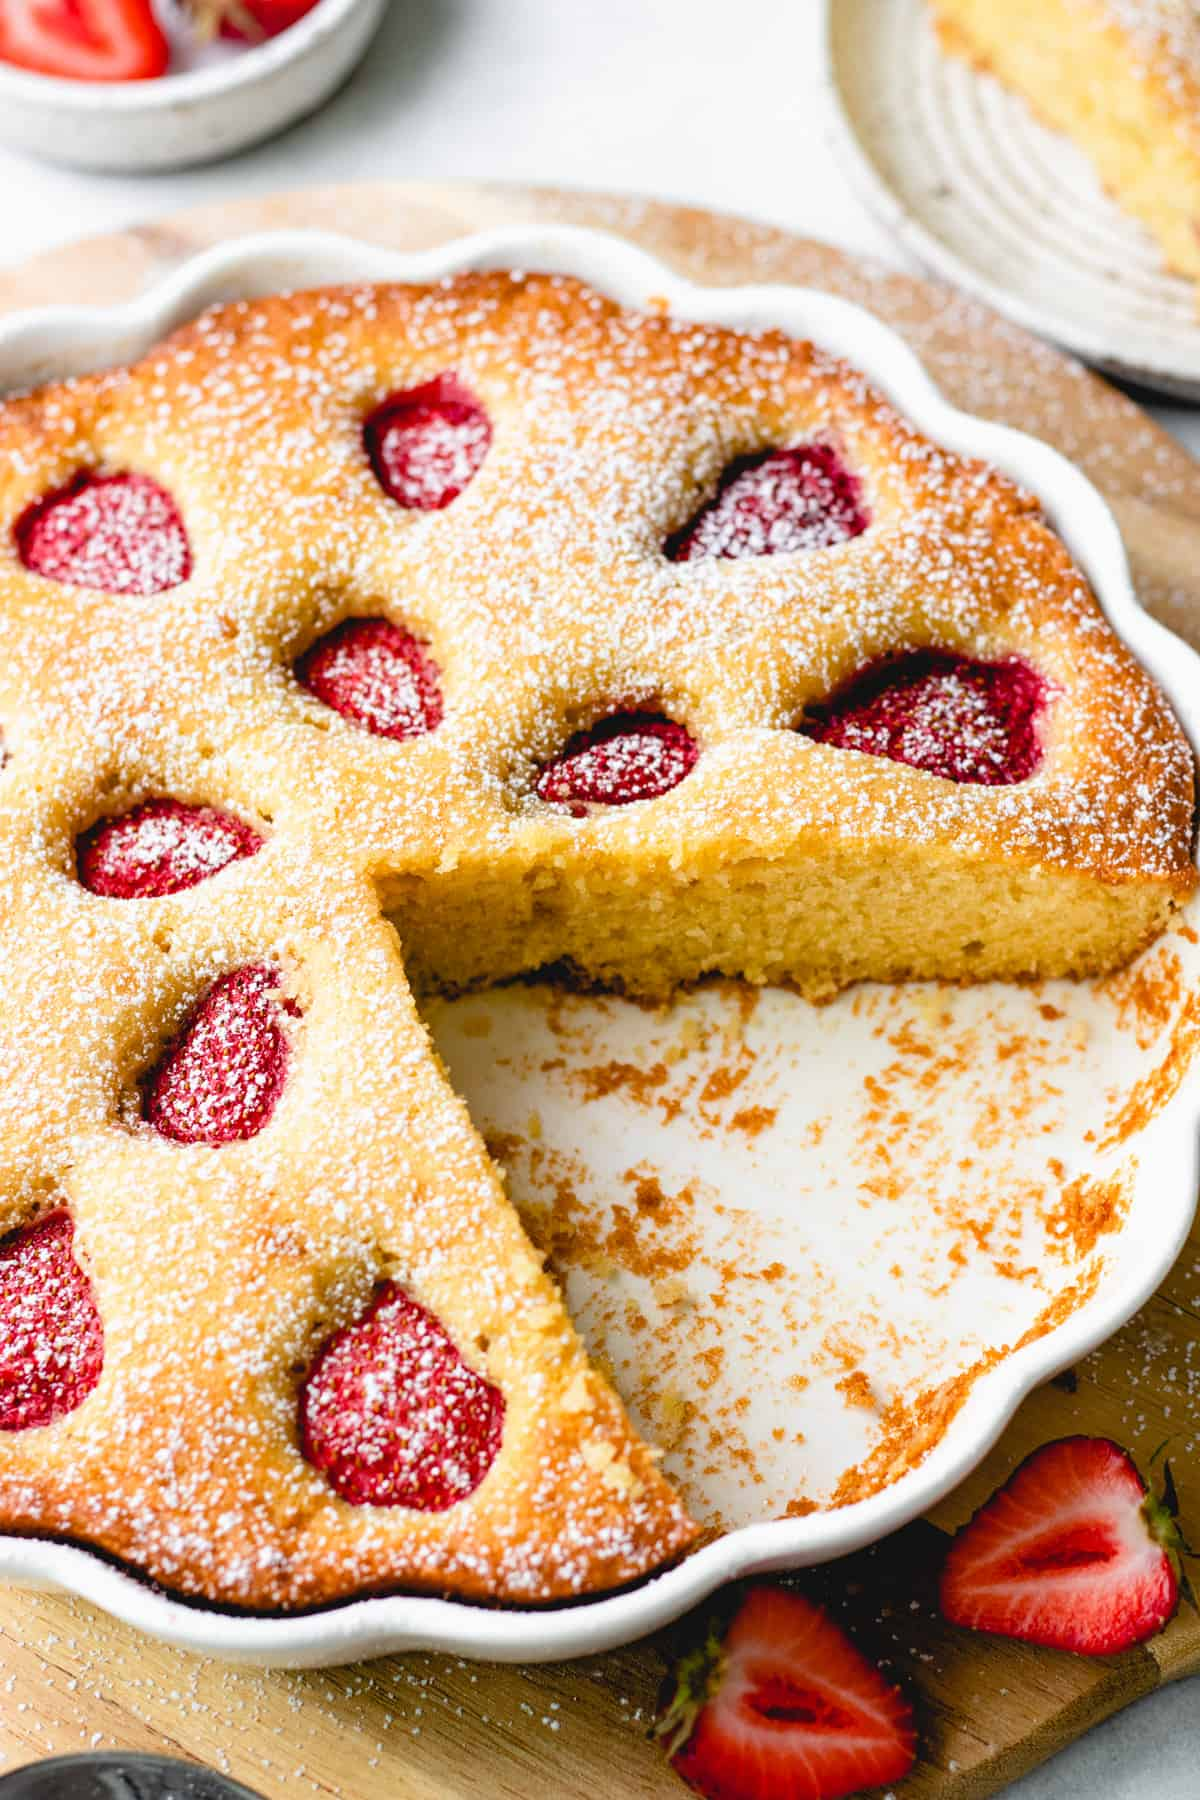 A sliced vanilla coffee cake, topped with strawberries, in a white round baking pan.